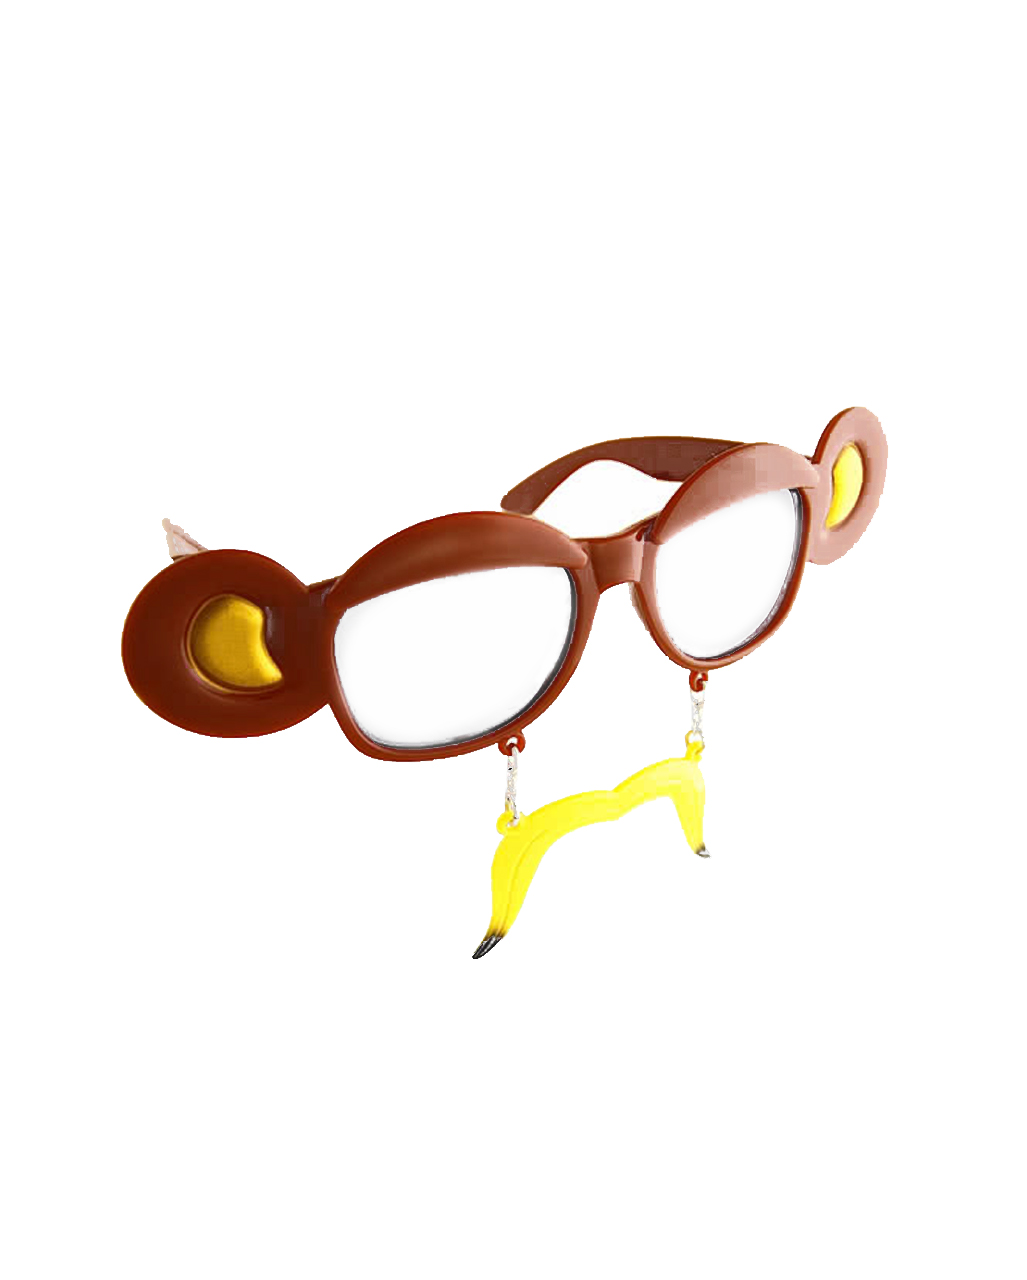 54caee25ef6 Bananas Monkey Glasses Transparent as a costume accessory